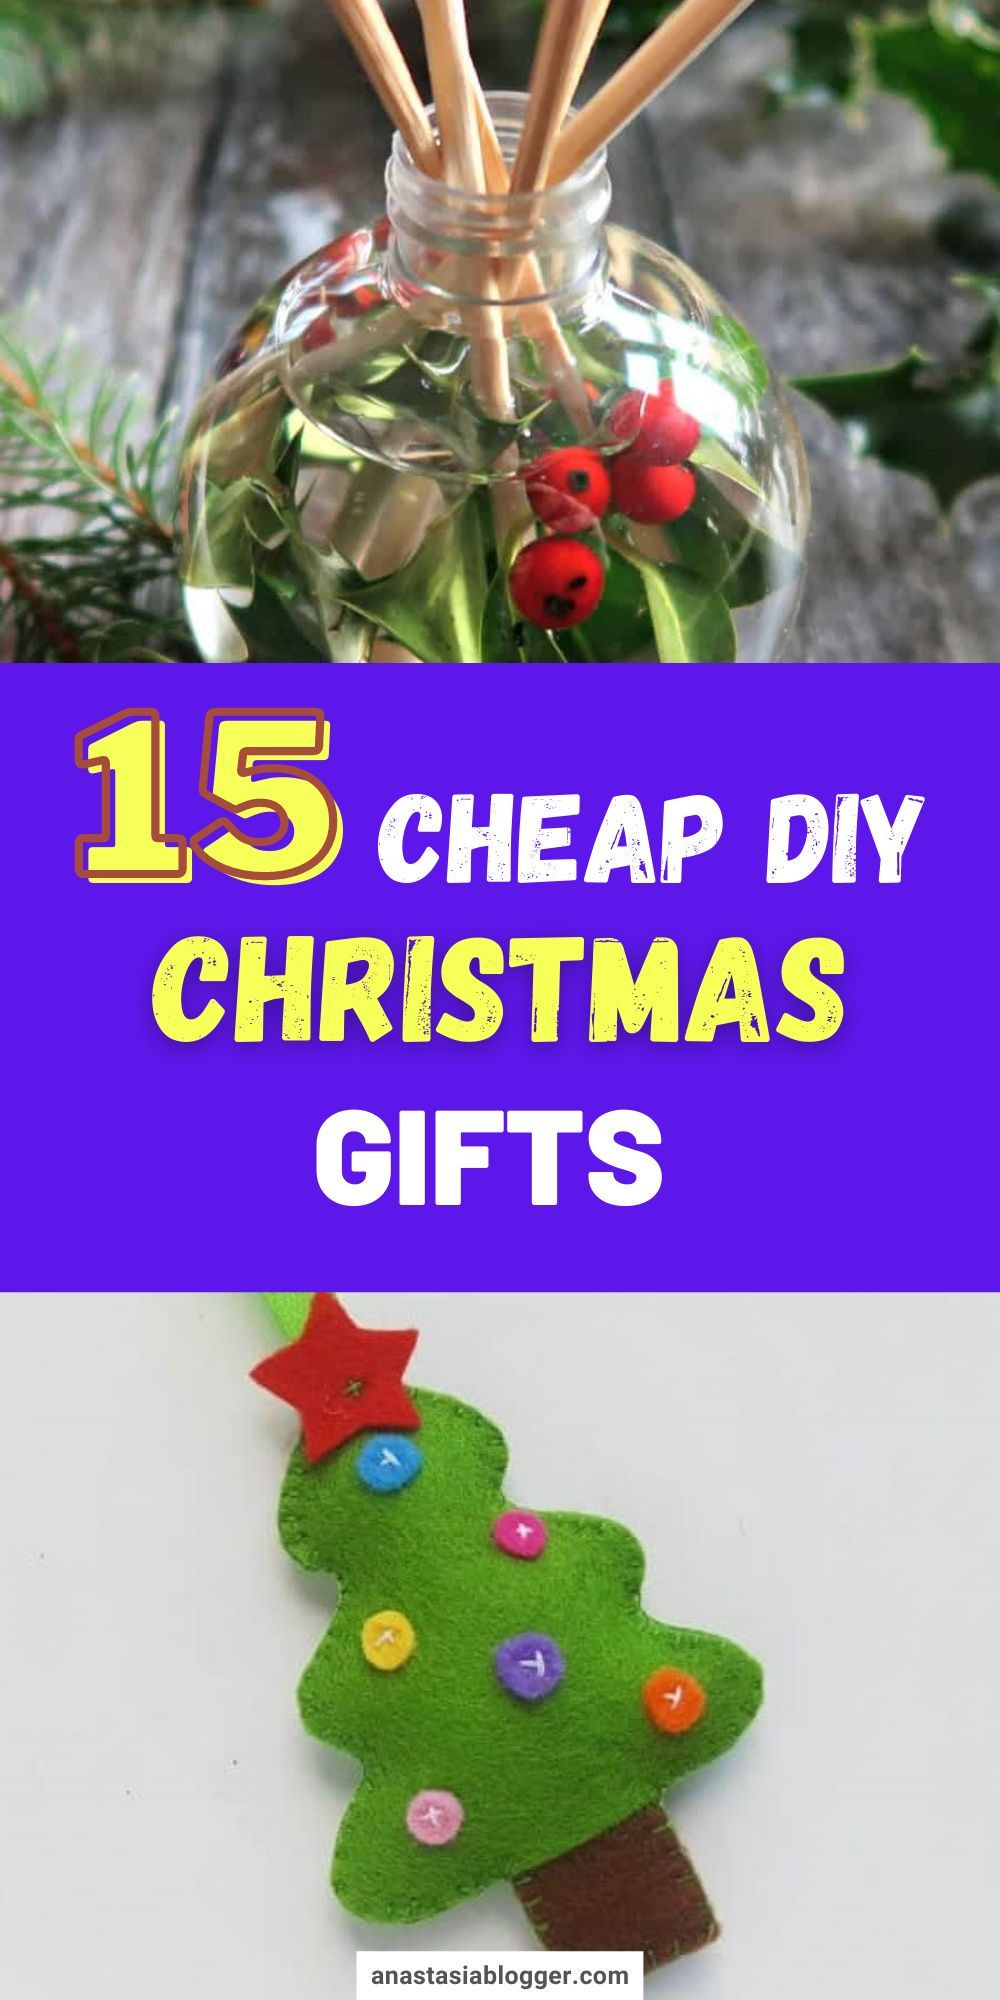 15 Cheap Diy Christmas Gift Ideas To Try This Year In 2020 Diy Christmas Gifts Cheap Christmas Diy Diy Christmas Gifts Cheap